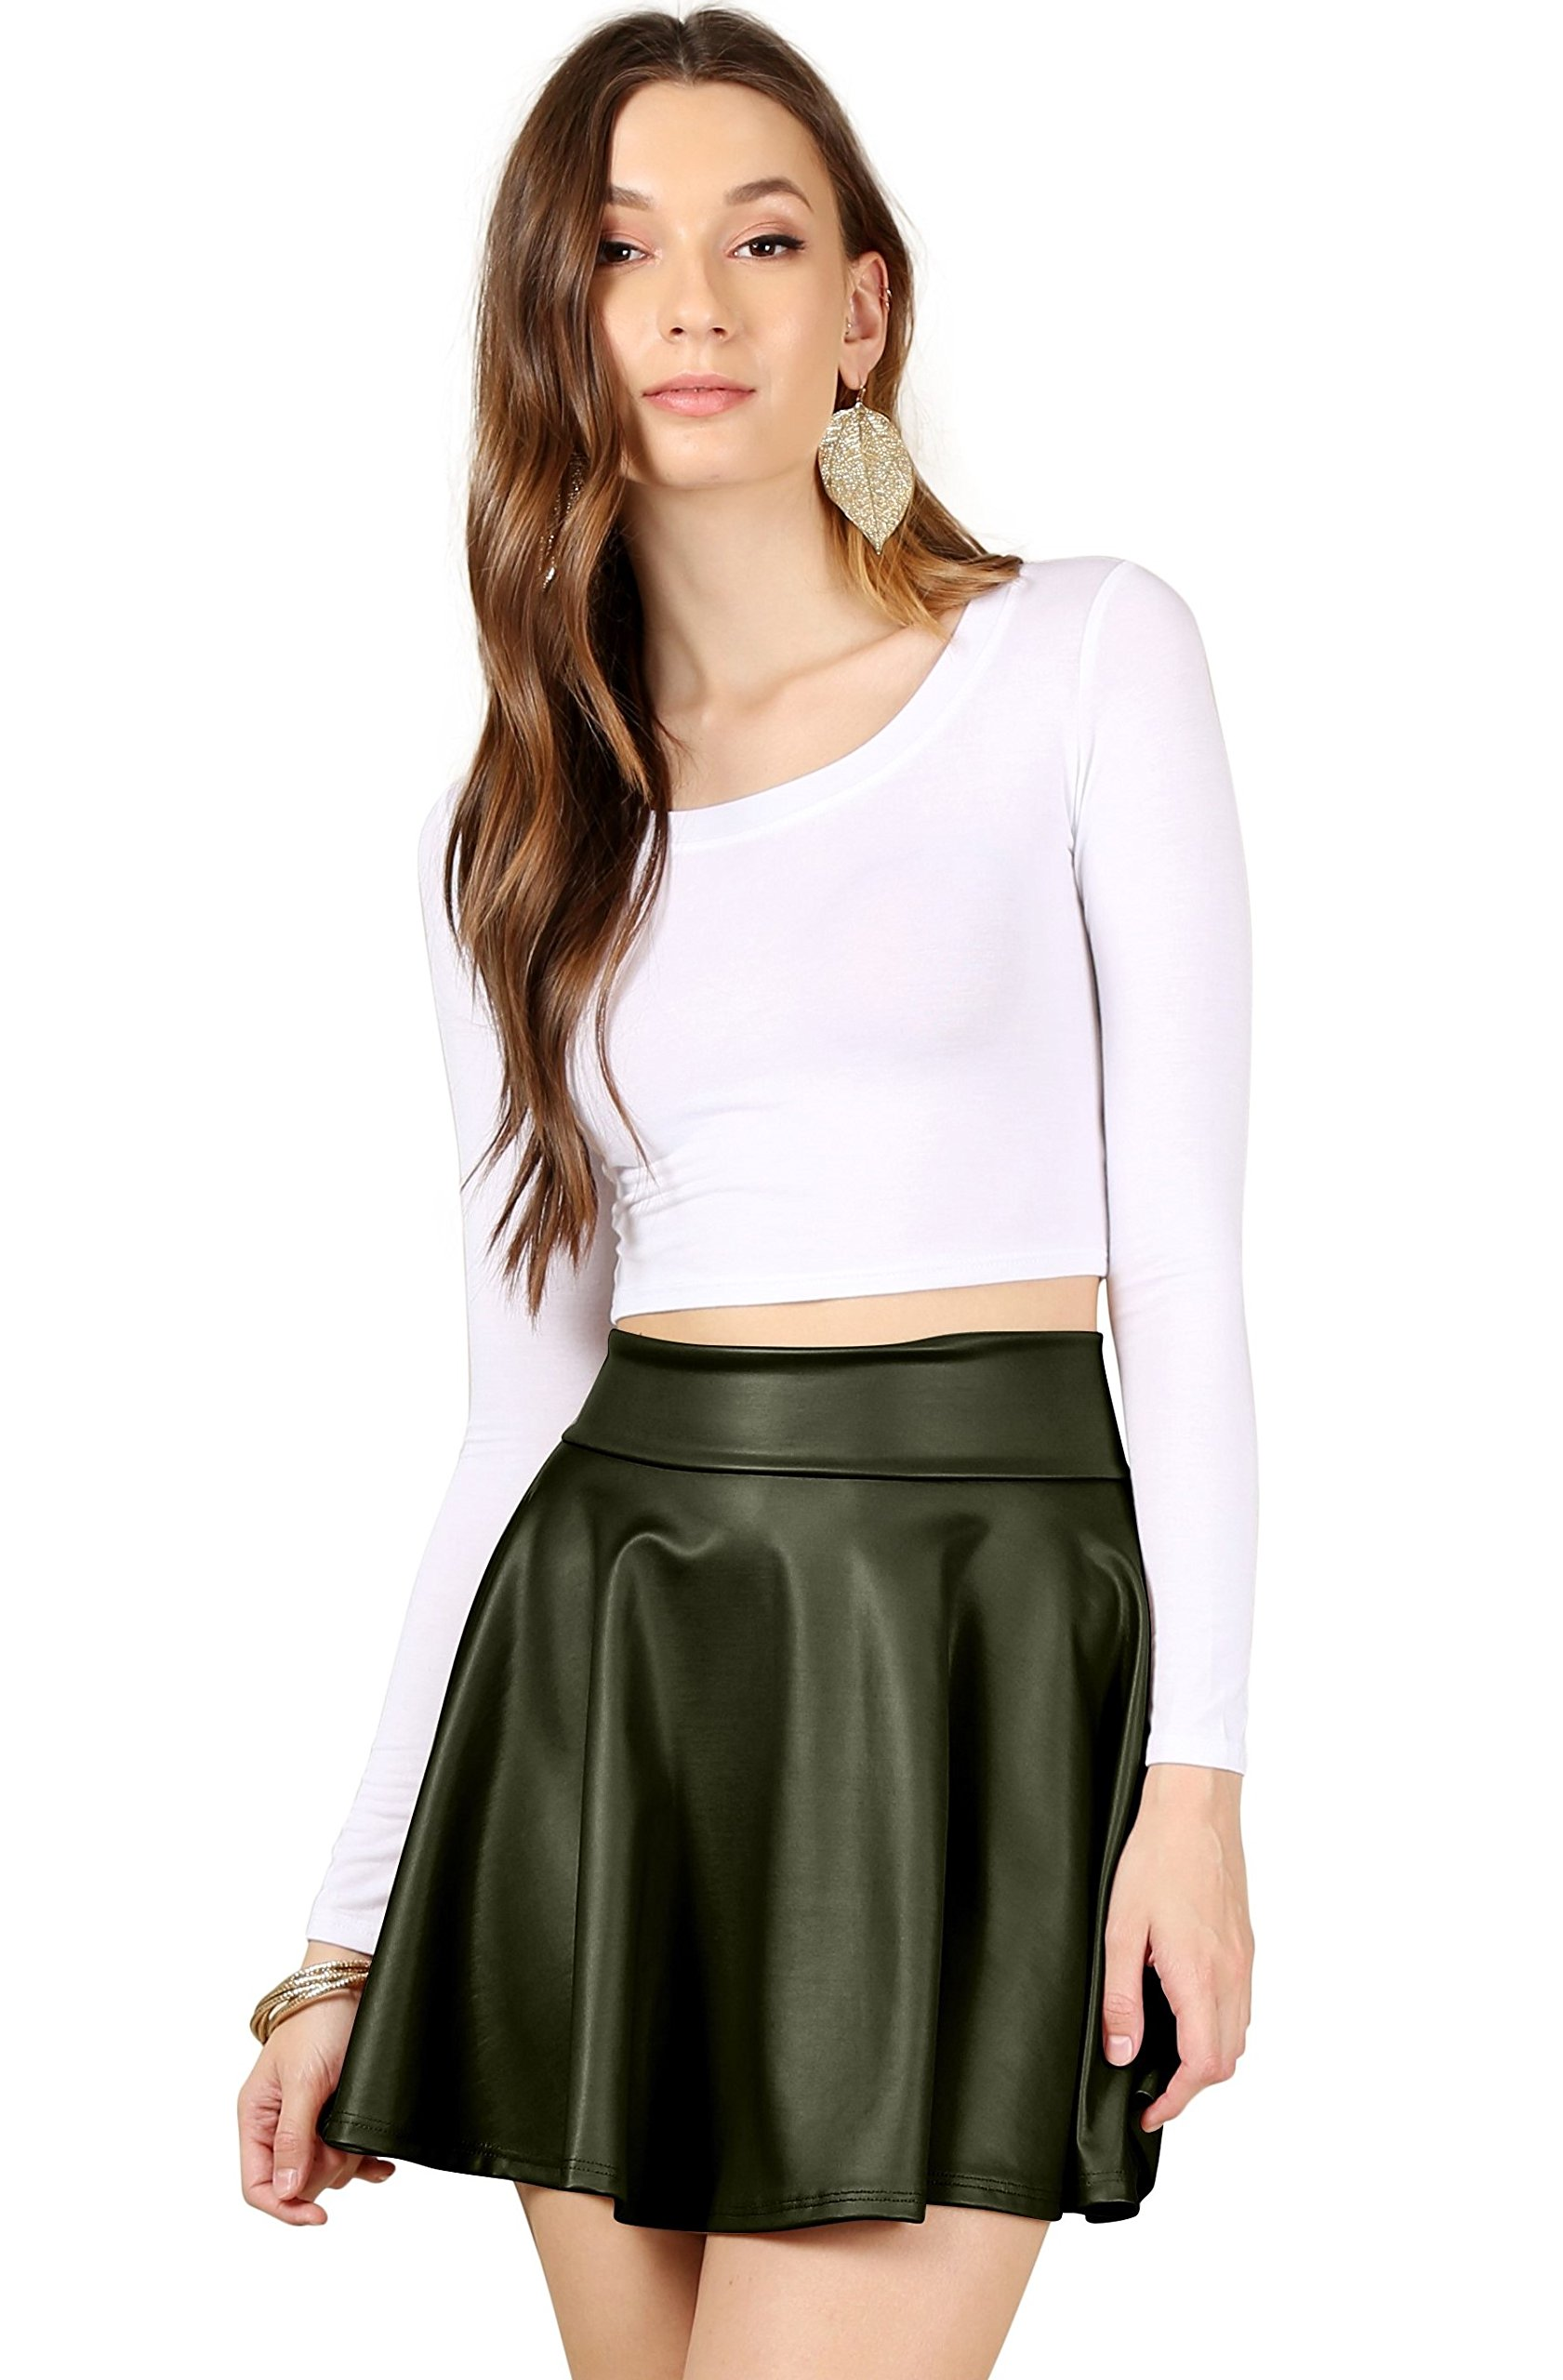 0b1b8f9192 Simlu Womens Faux Leather reg and Plus Size Short a Line Mini Skater Skirt  - Made in USA, Olive Leather, Large